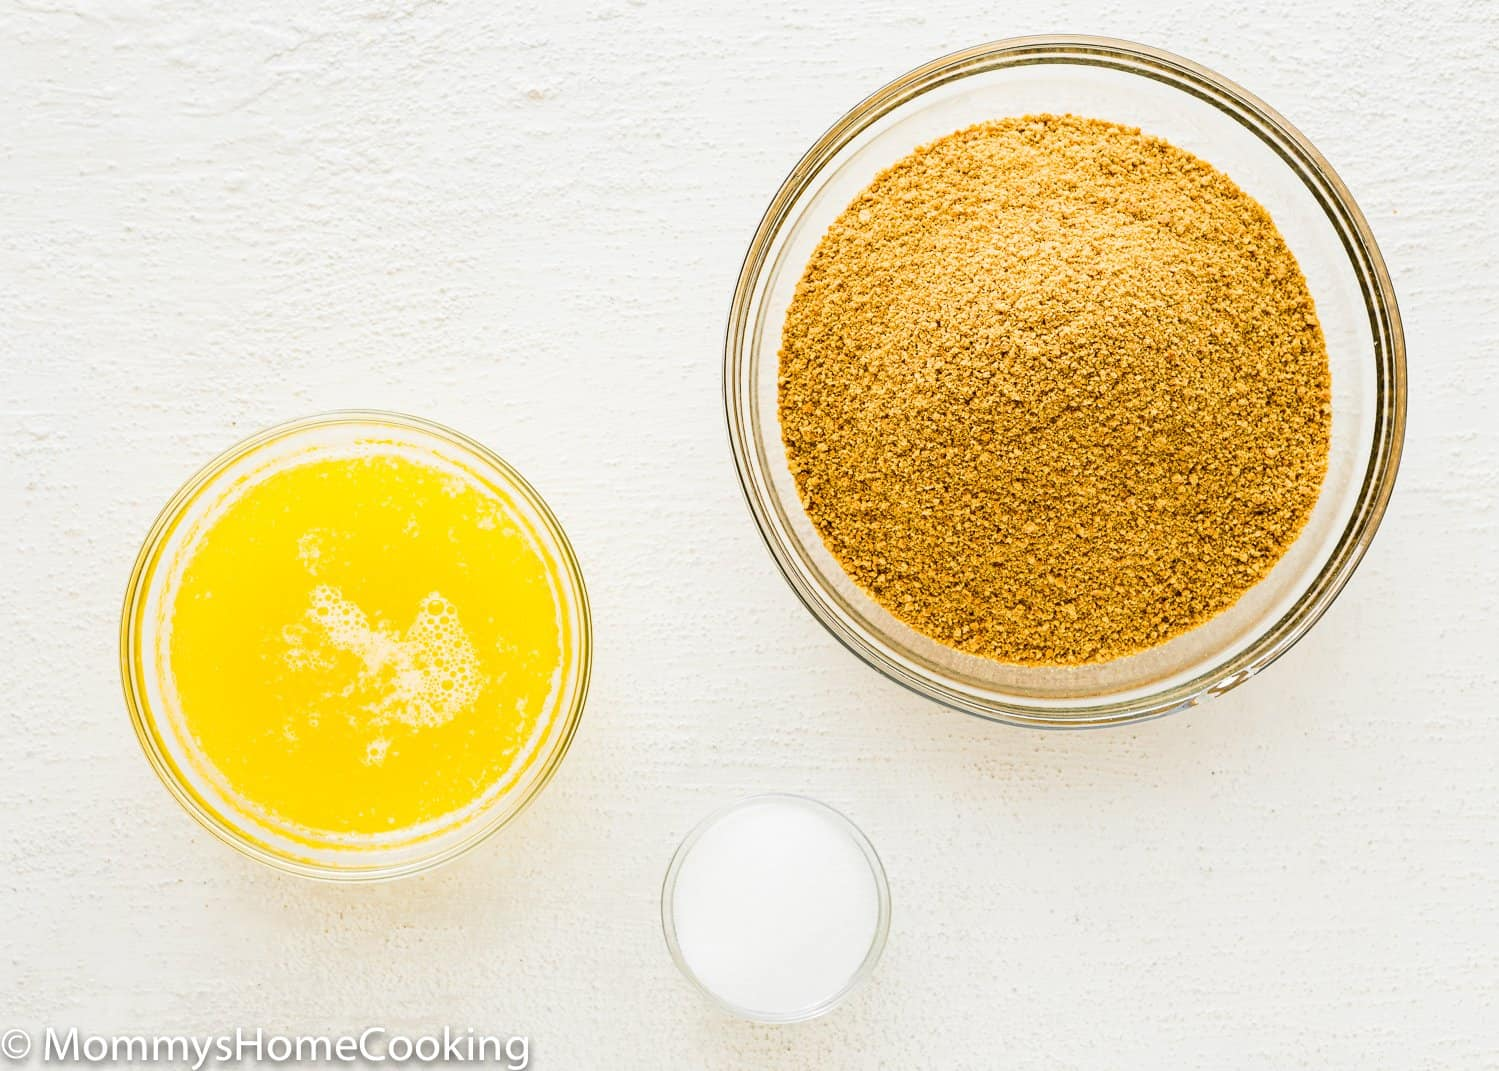 Graham Cracker Crust Ingredients